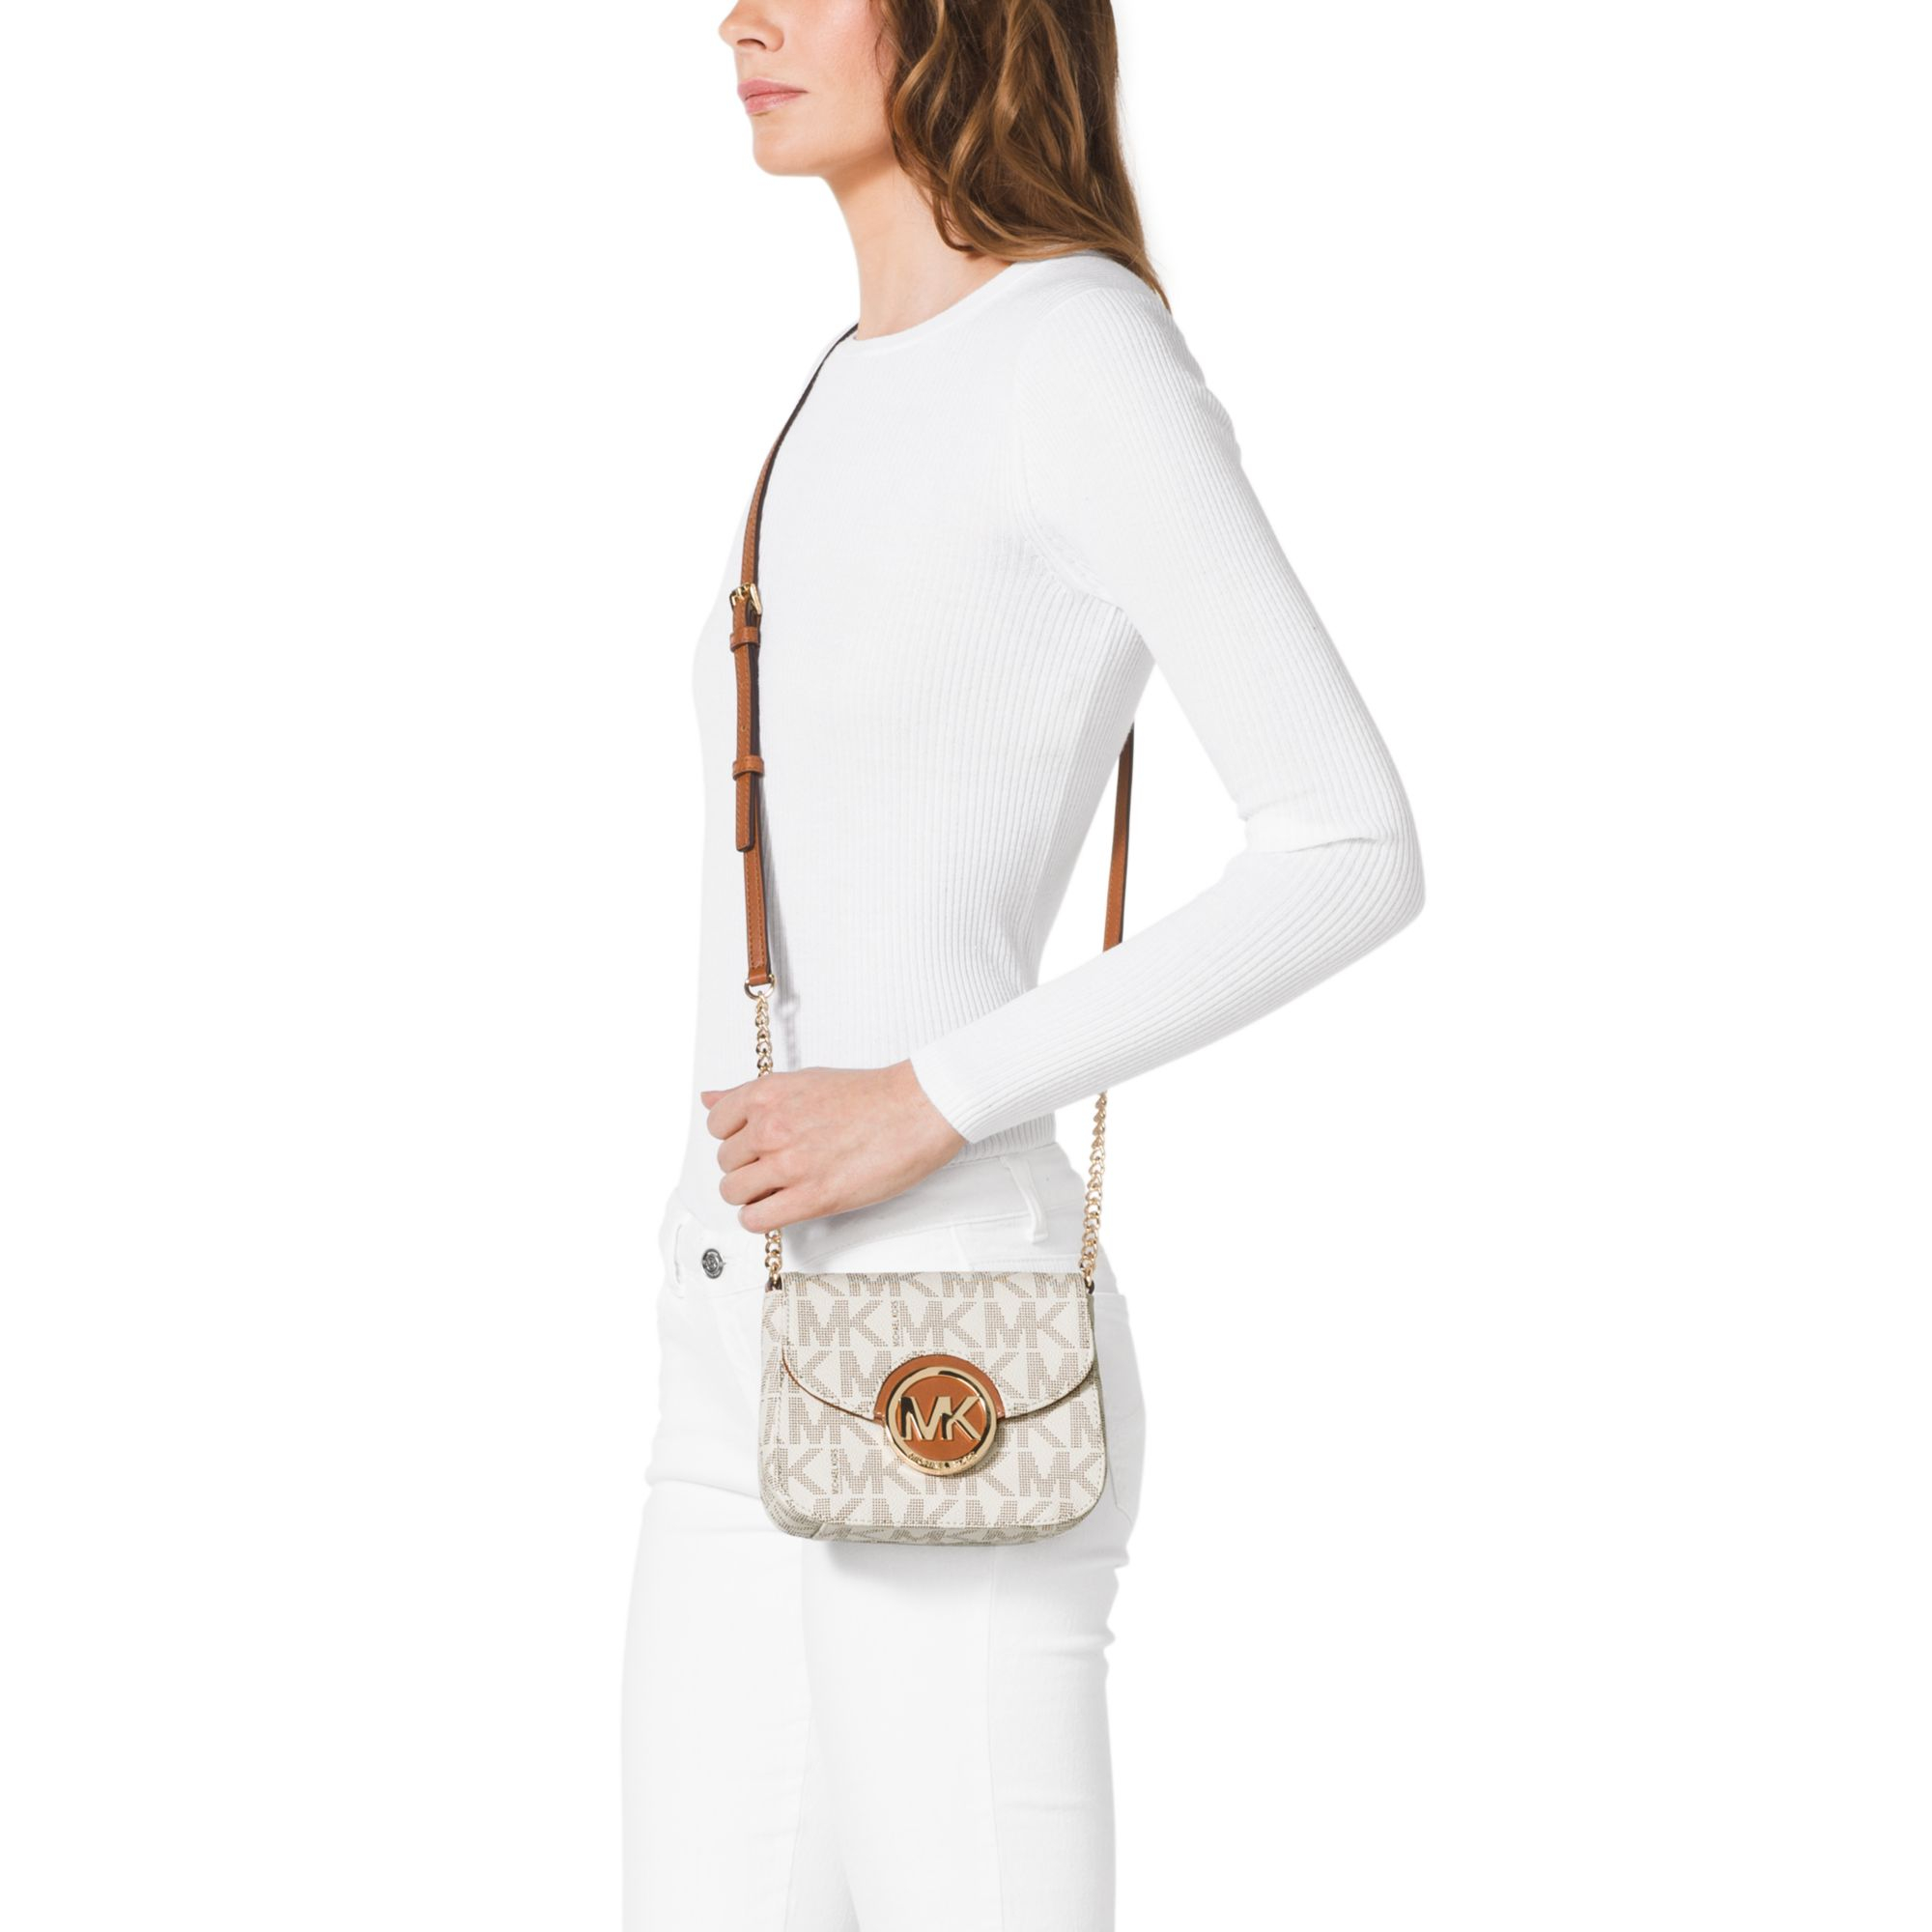 michael kors fulton small crossbody in white lyst. Black Bedroom Furniture Sets. Home Design Ideas